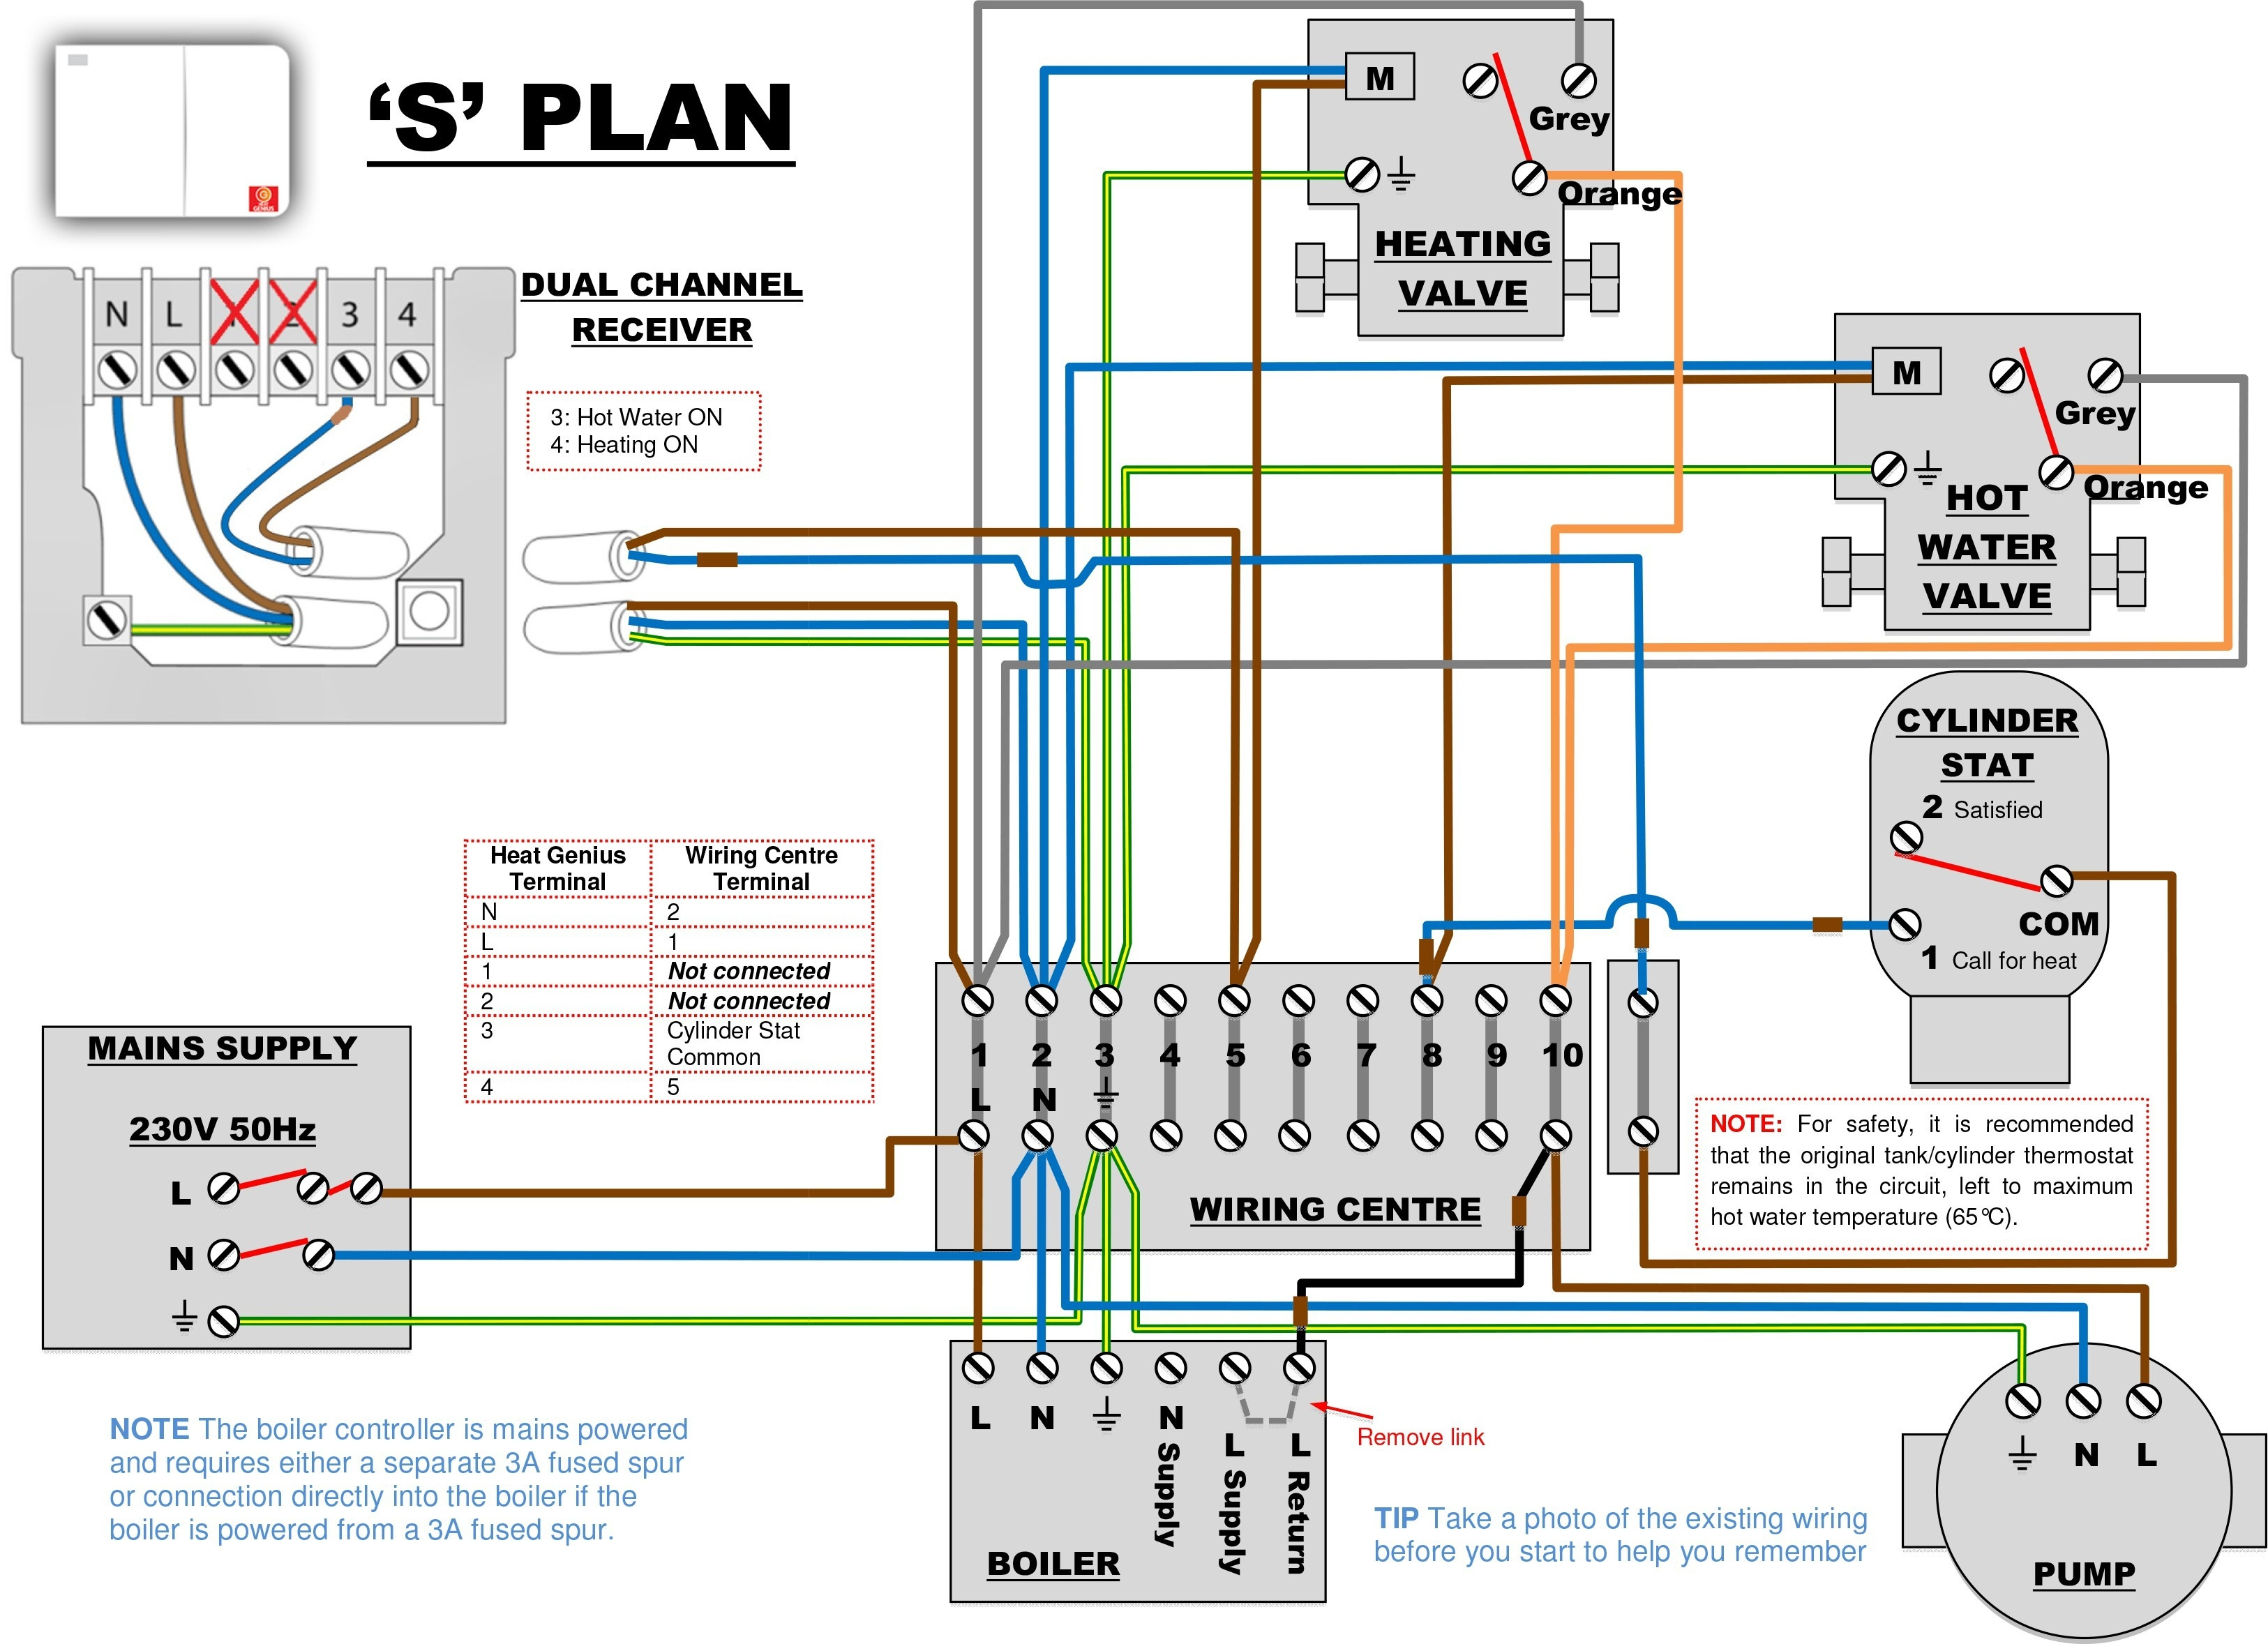 Nest Thermostat Wiring Diagram For Carrier Infinity - Wiring - Nest Thermostat Heat Pump Aux Heat Wiring Diagram